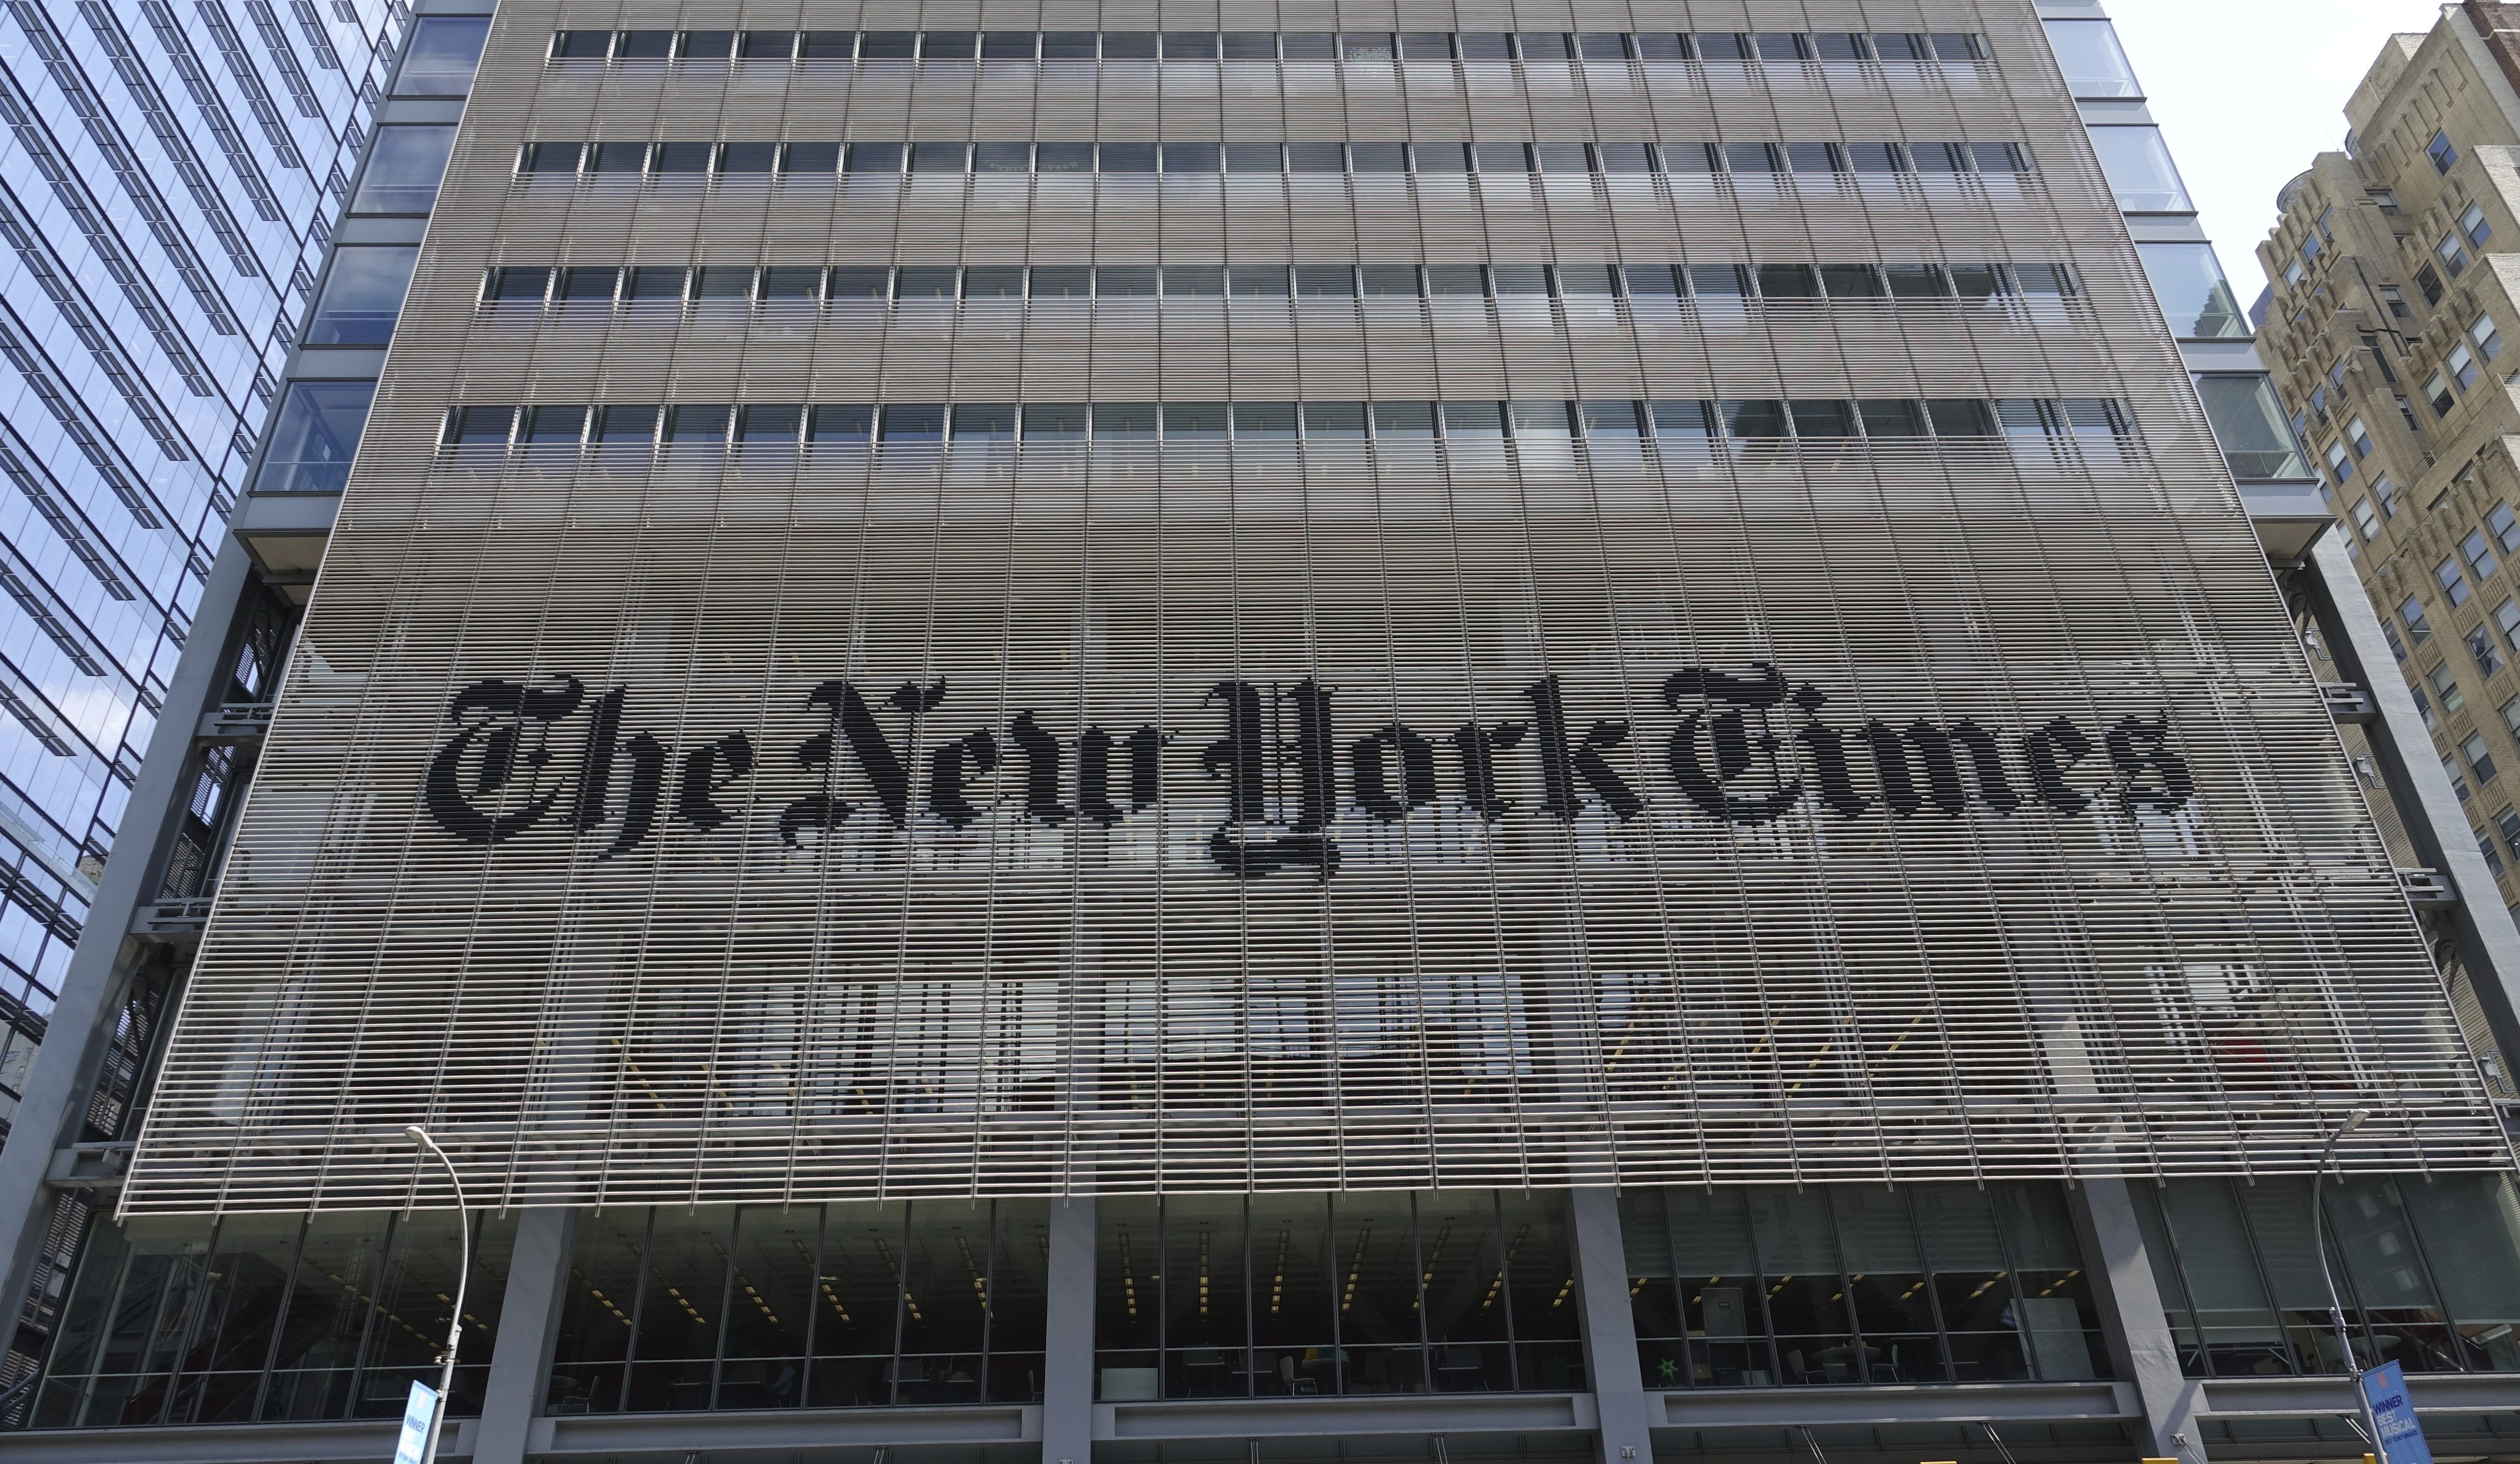 10 September 2019, US, New York: Building of the New York Times newspaper publishing house. Photo by: Alexandra Schuler/picture-alliance/dpa/AP Images